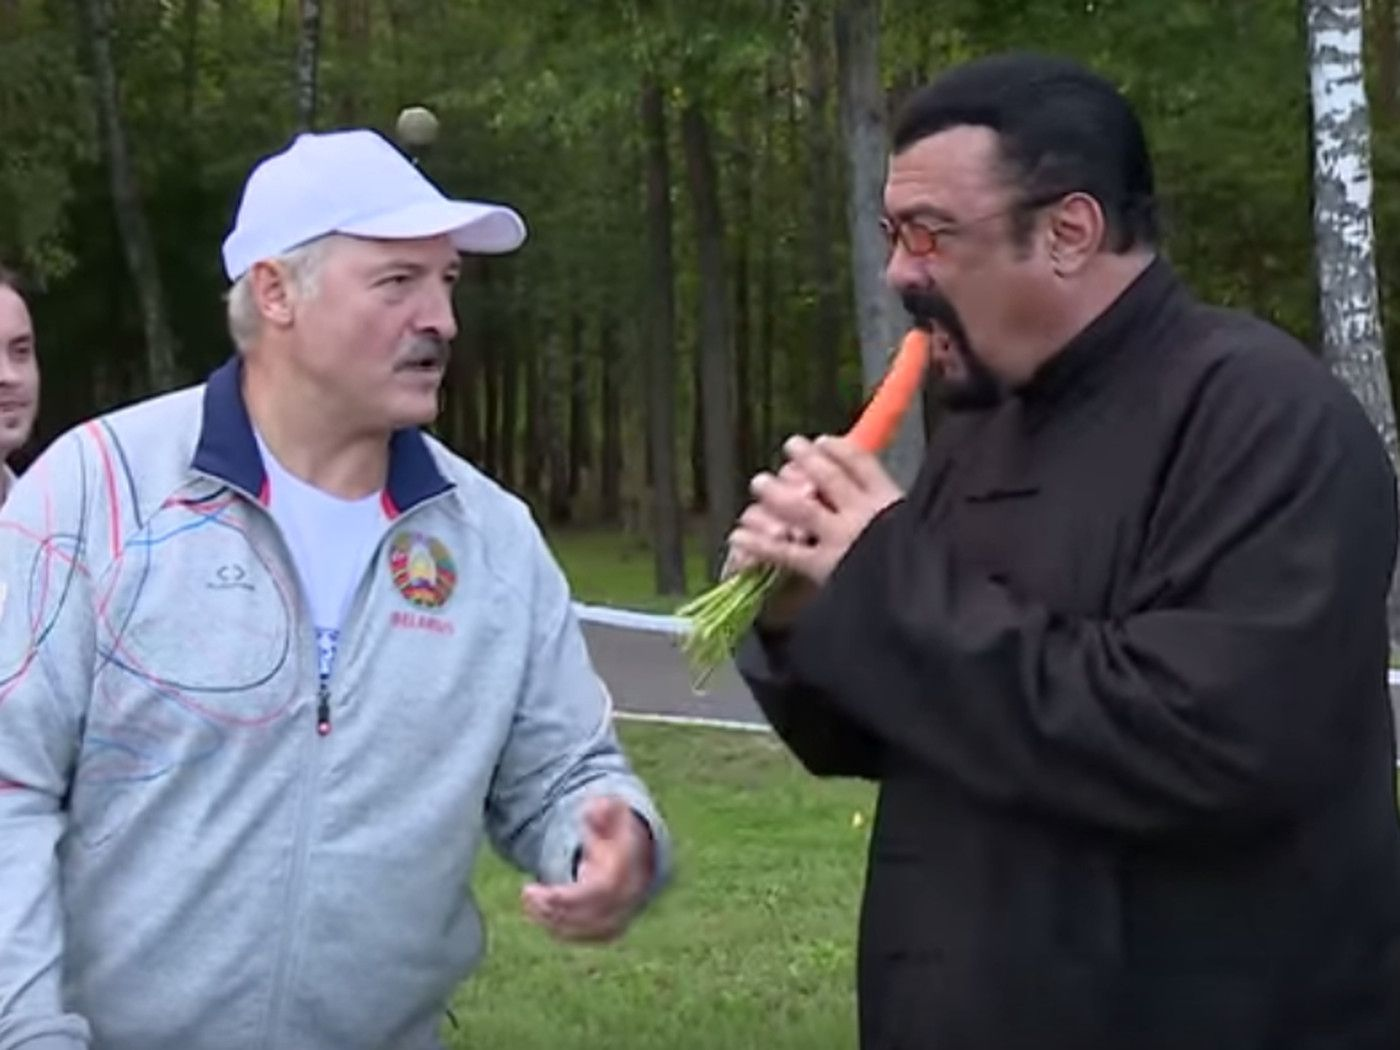 Lukashenko and Seagal approve the carrotposting